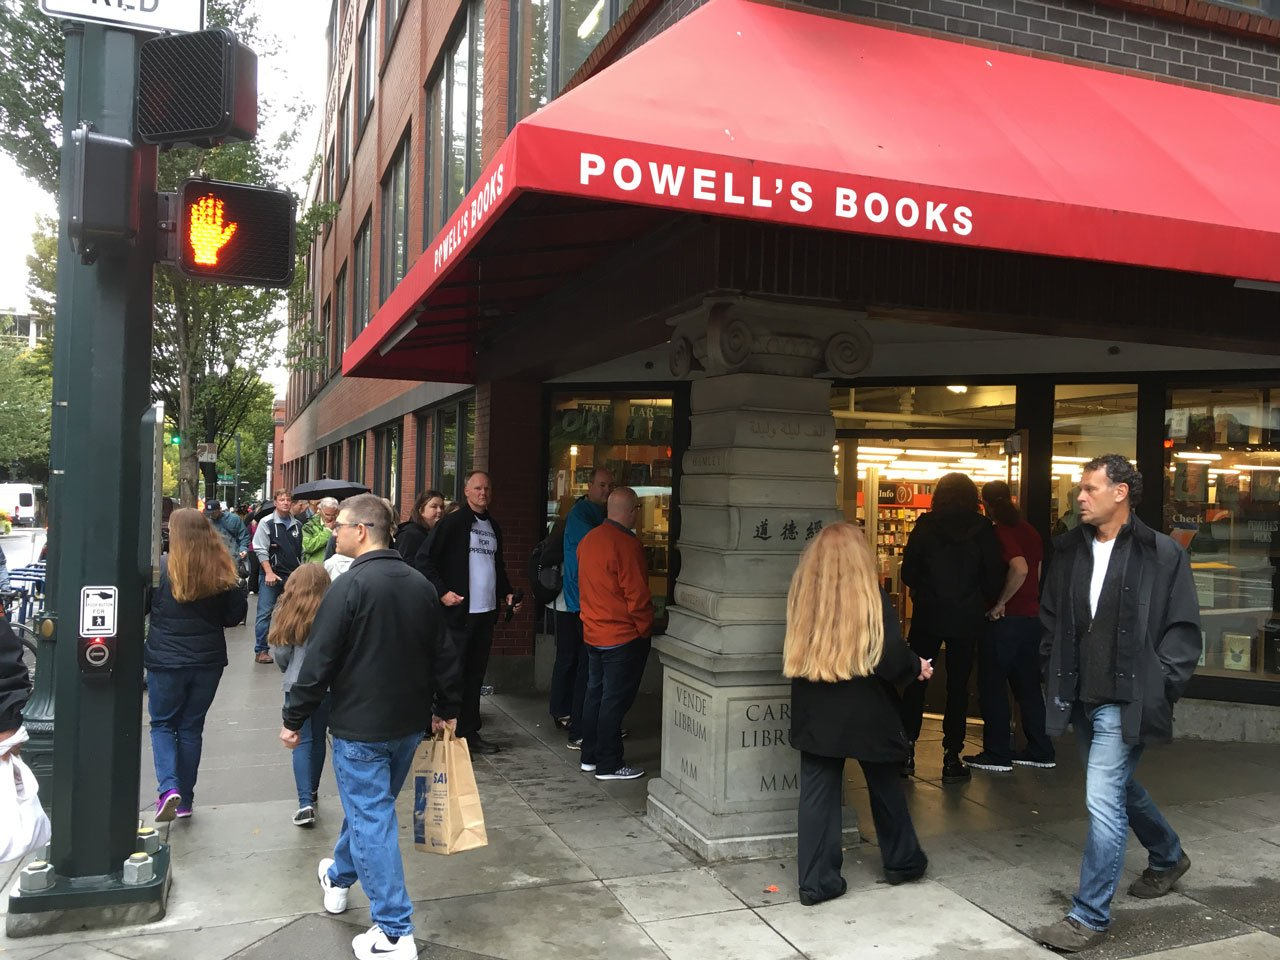 Fans lined up outside Powell's City of Books in downtown Portland to meet Bruce Springsteen and pick up a signed copy of his new autobiography. (KPTV)